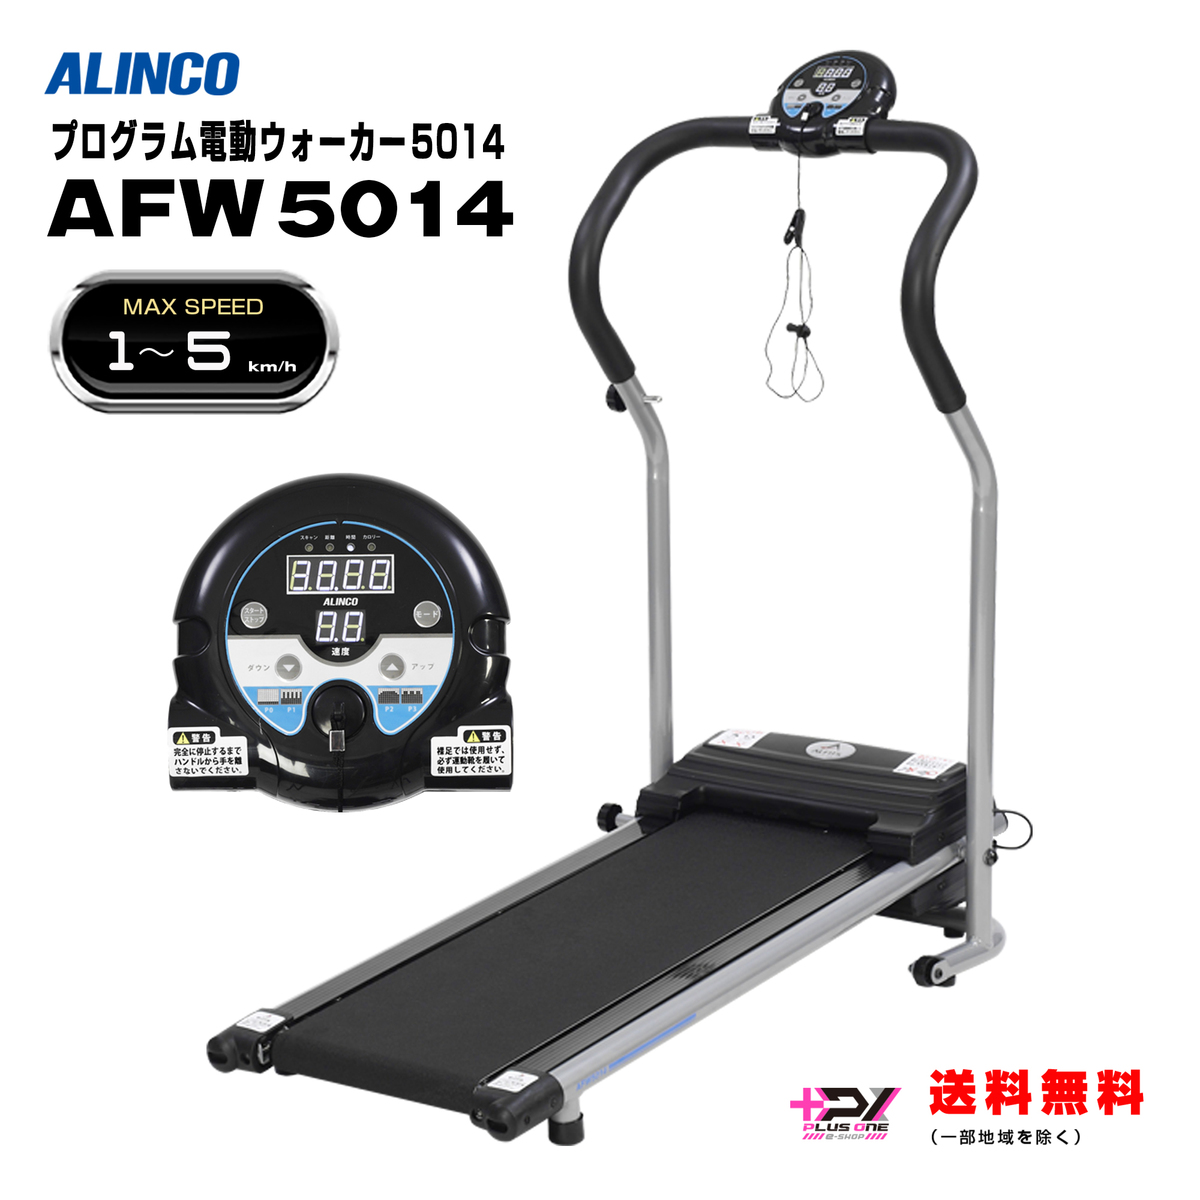 ALINCOAFW5014プログラム電動ウォーカー5014最高速度5km/h